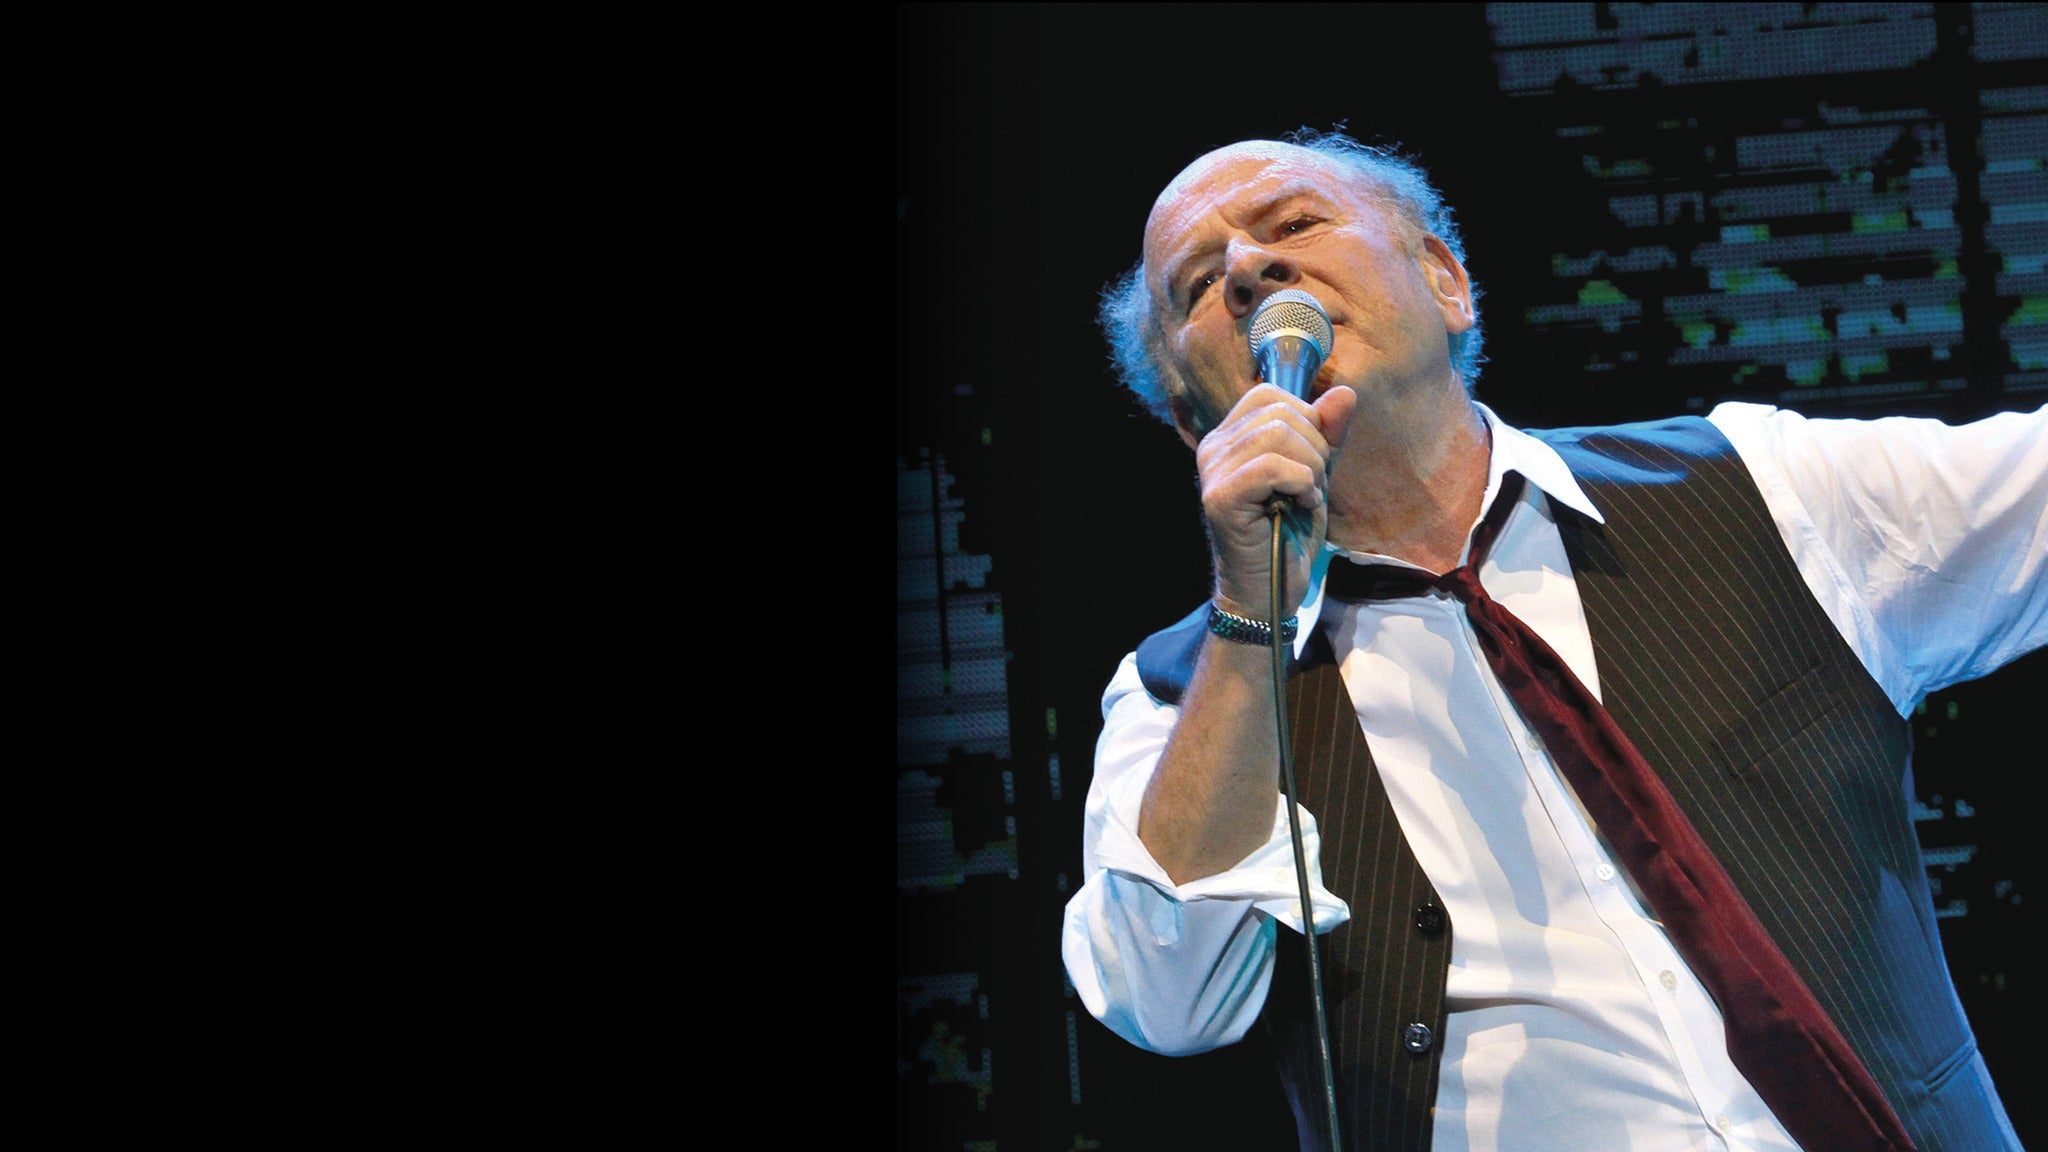 Art Garfunkel at Community Arts Center - PA